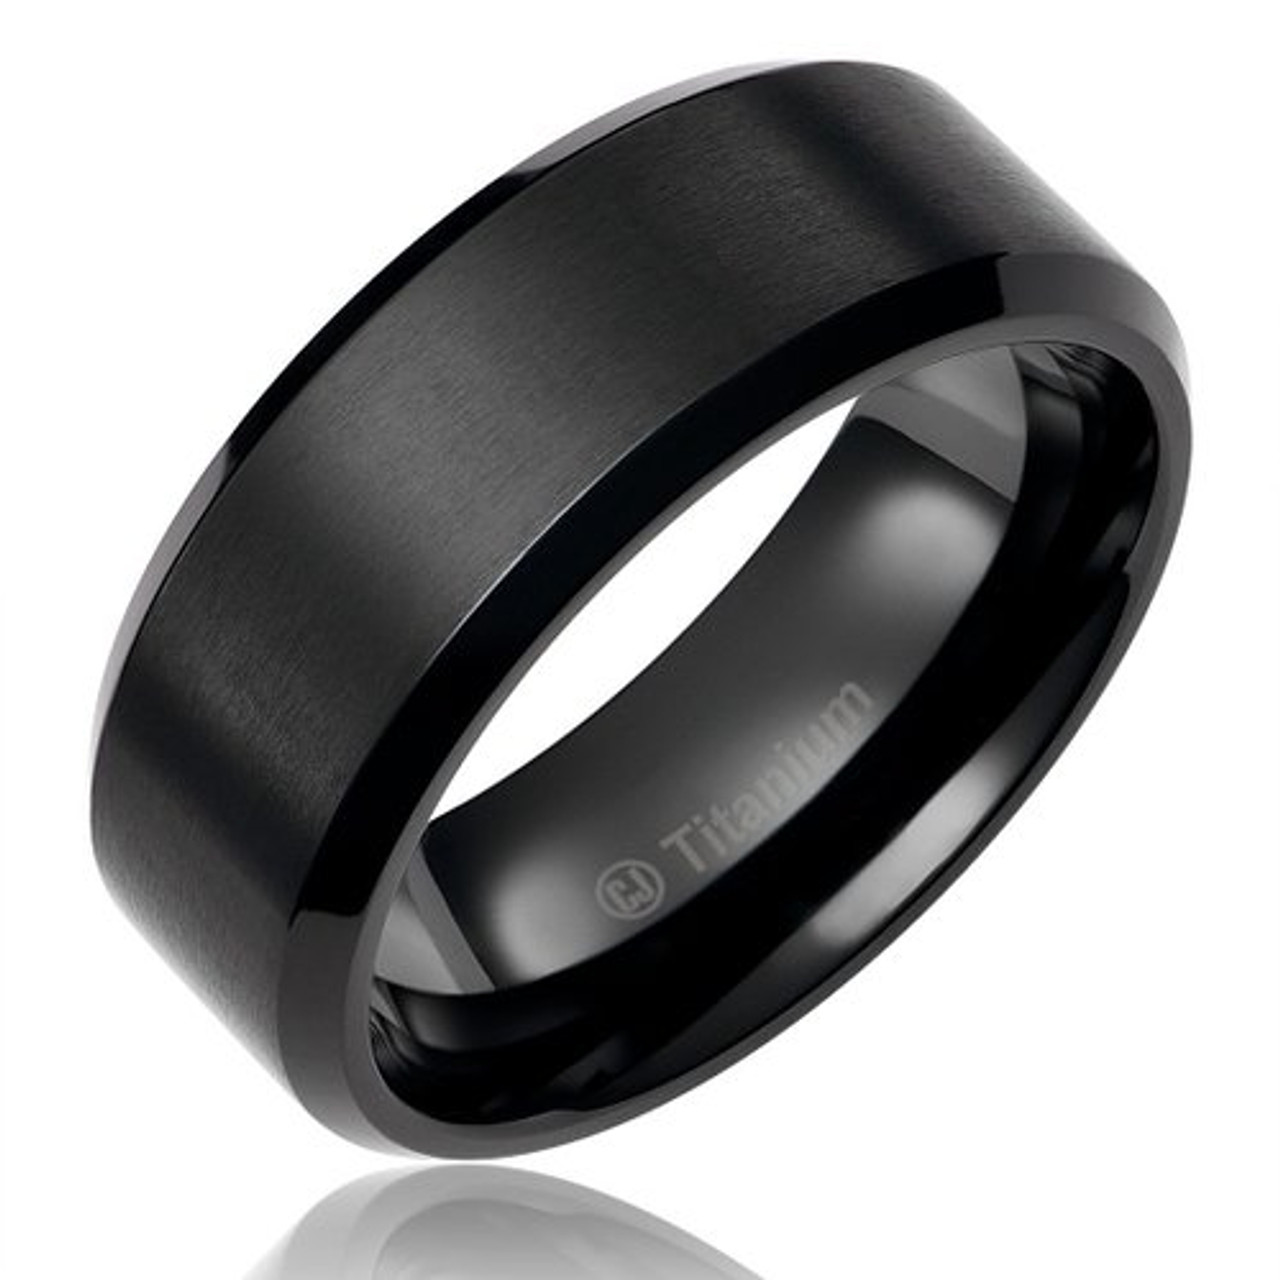 White IP Plated Titanium Ring Domed Brushed Center Stepped Edge 8mm Cheap Wedding band Free Engraving Titanium Ring Man Wedding Band